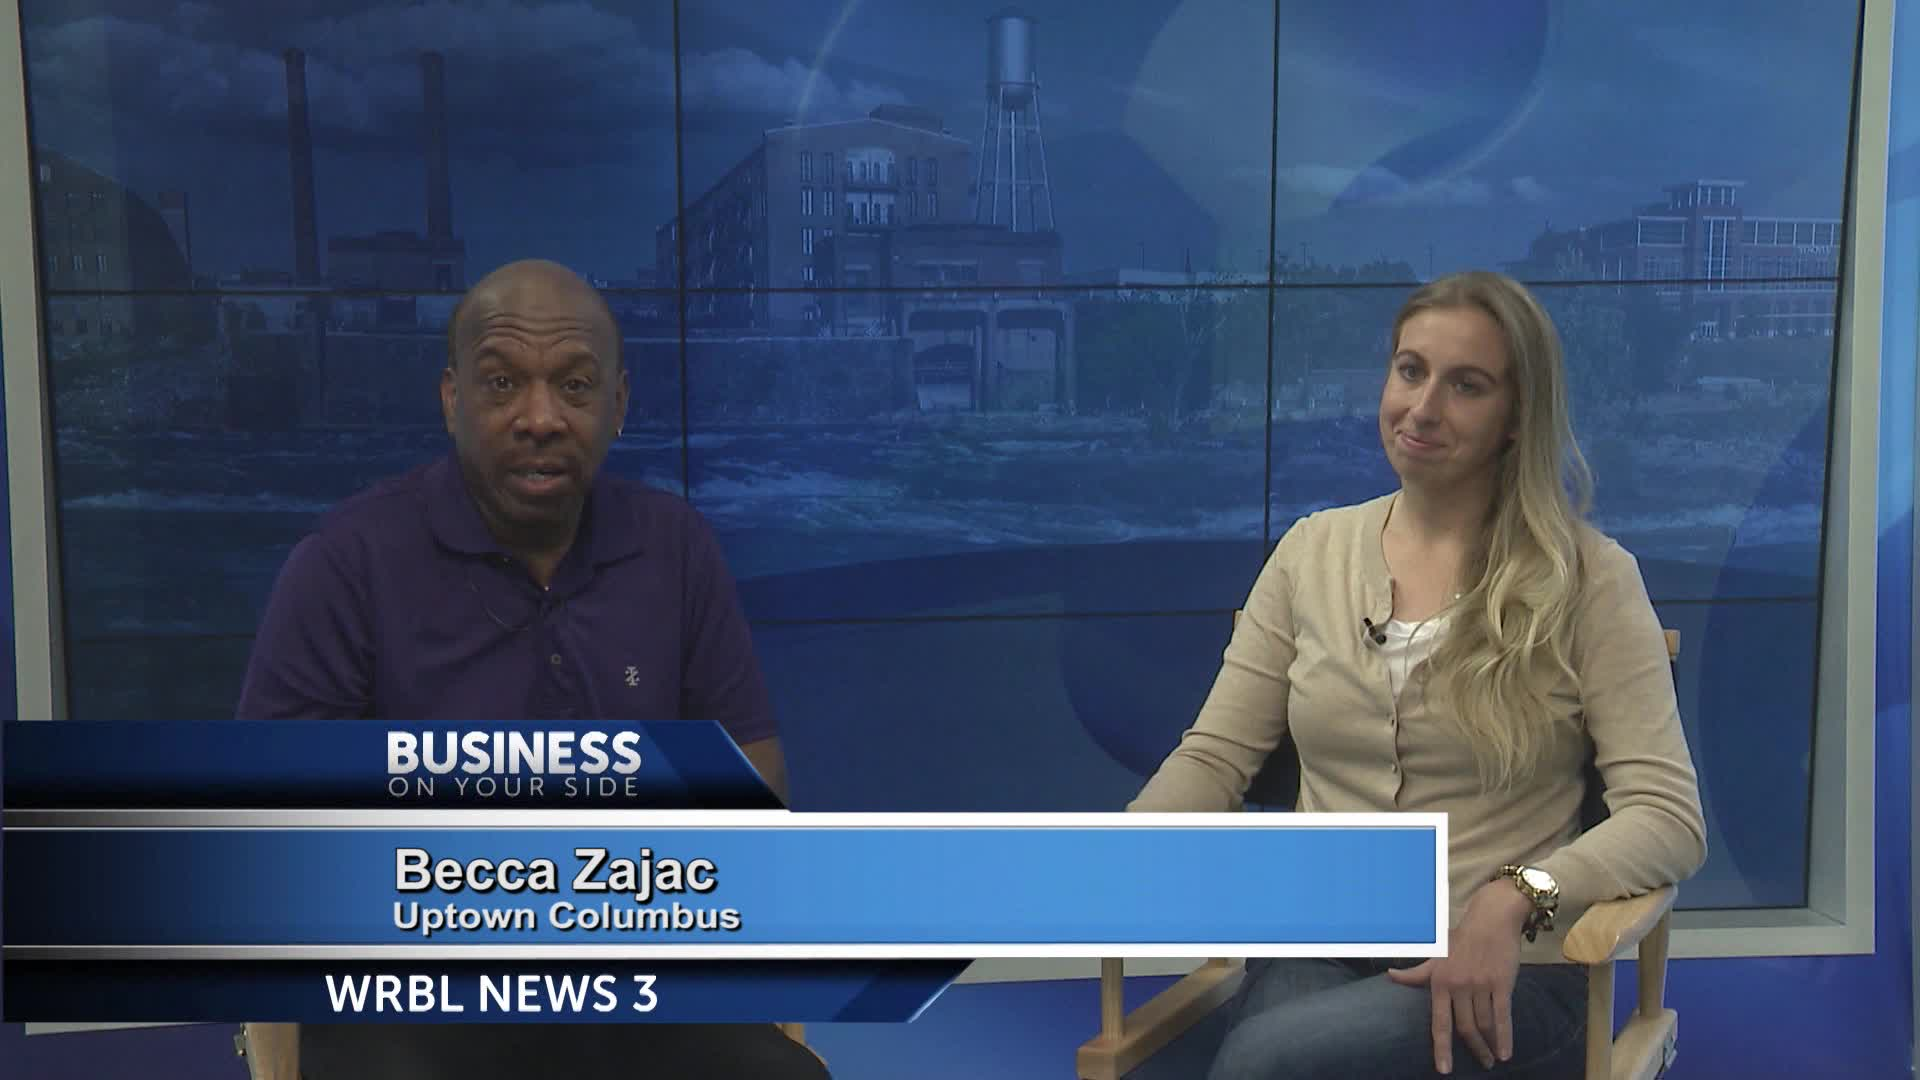 Business On Your Side: Uptown Columbus